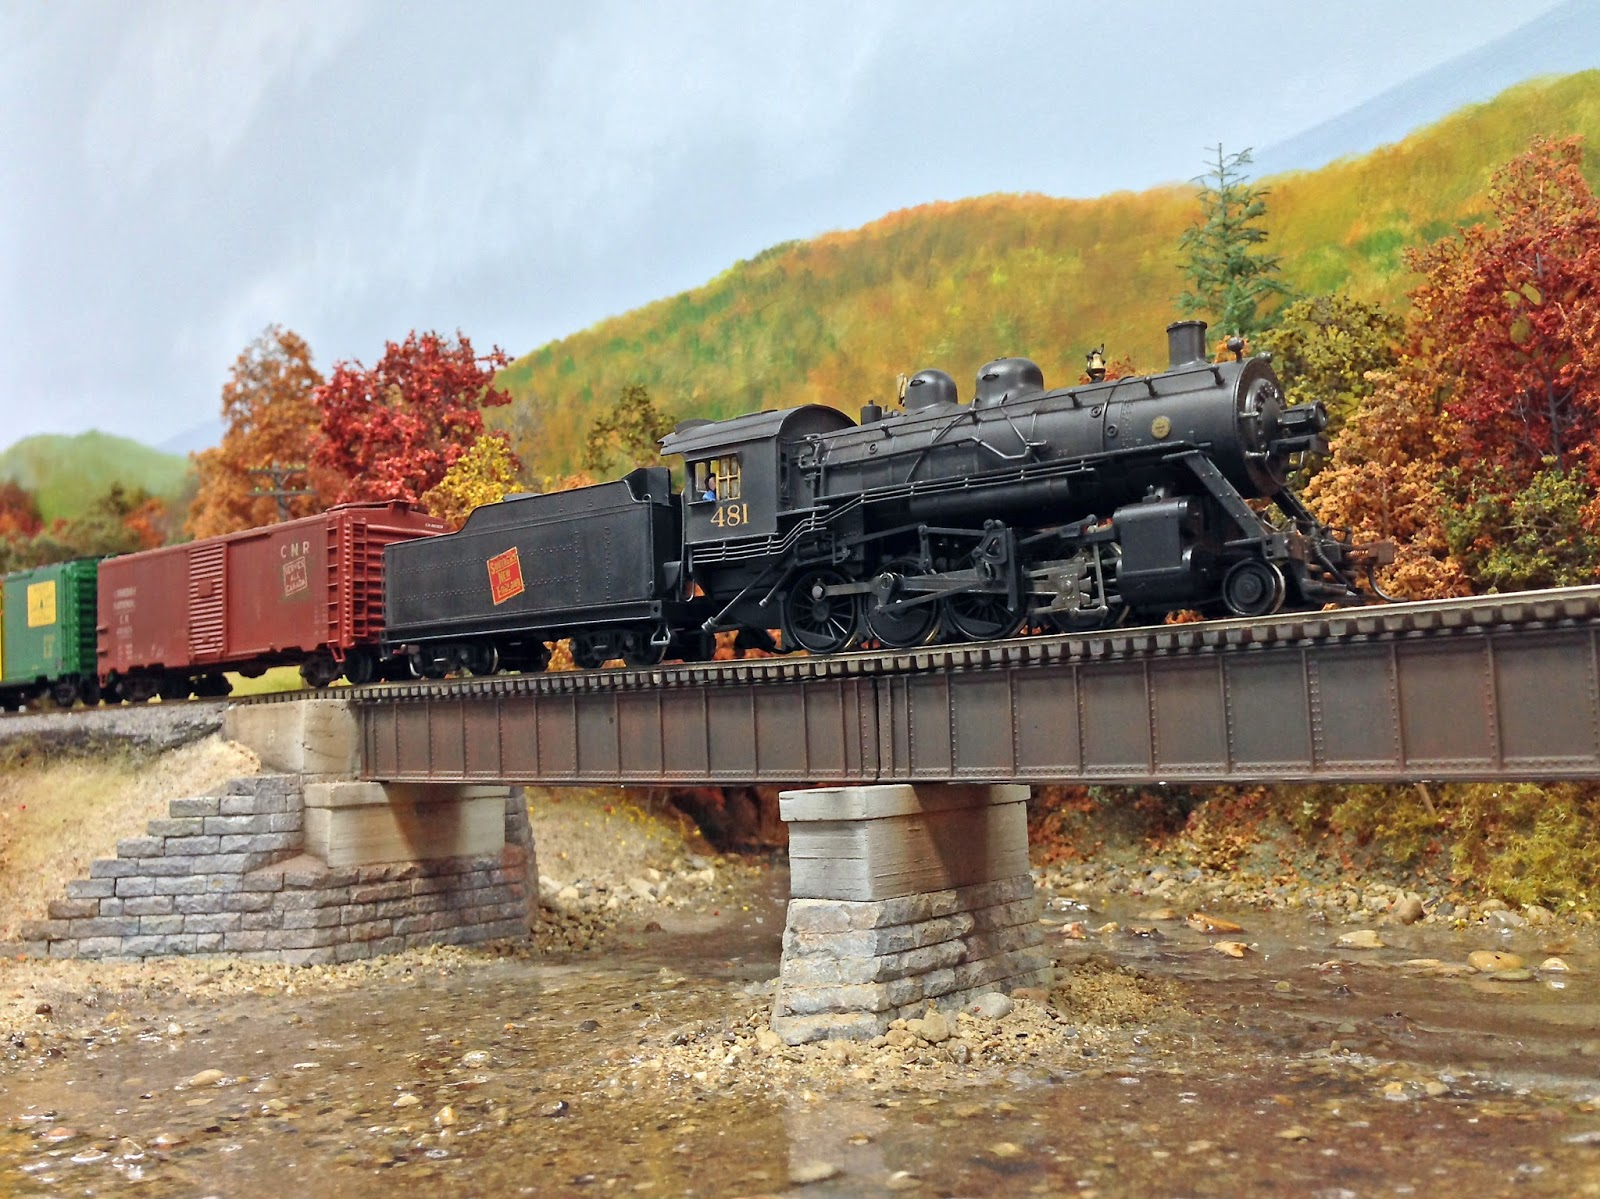 usmrr aquia line and other model railroad adventures op session op session on marty mcguirk s cv layout